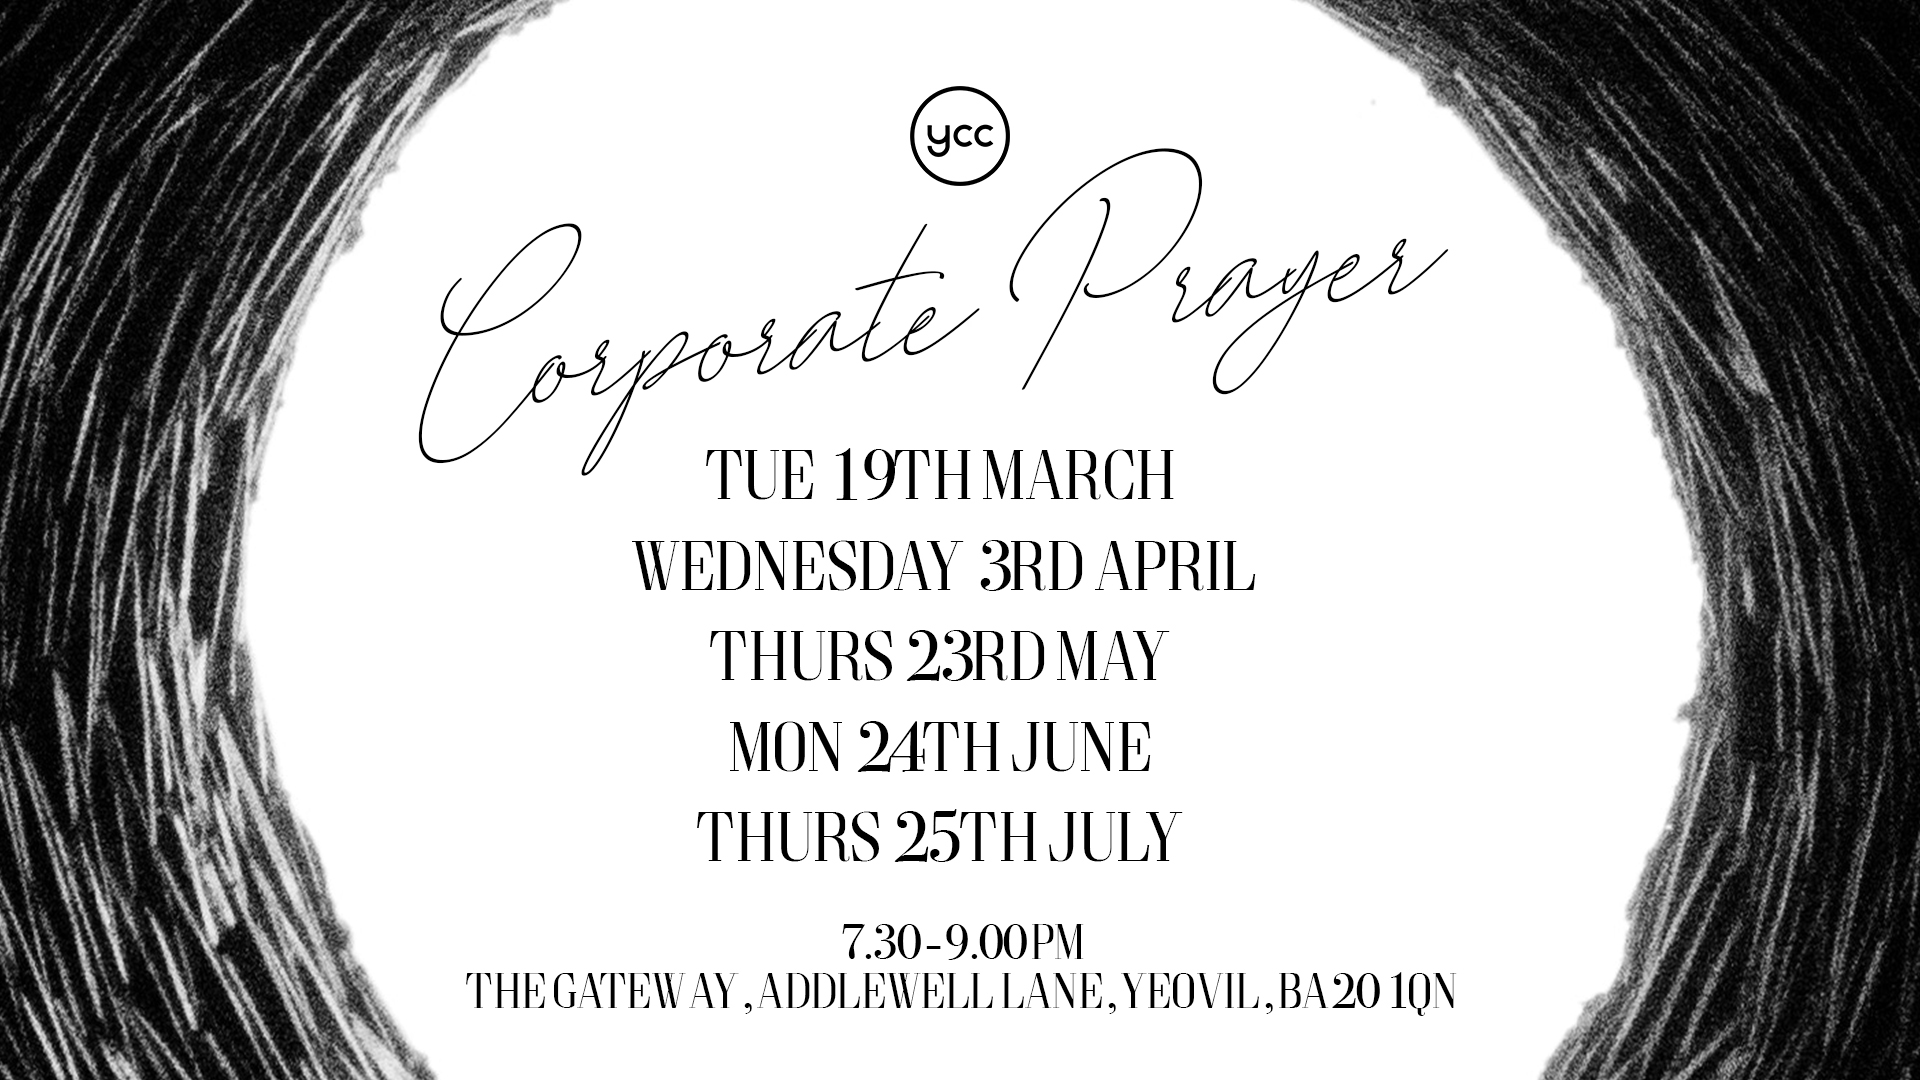 Corporate prayer dates flyer